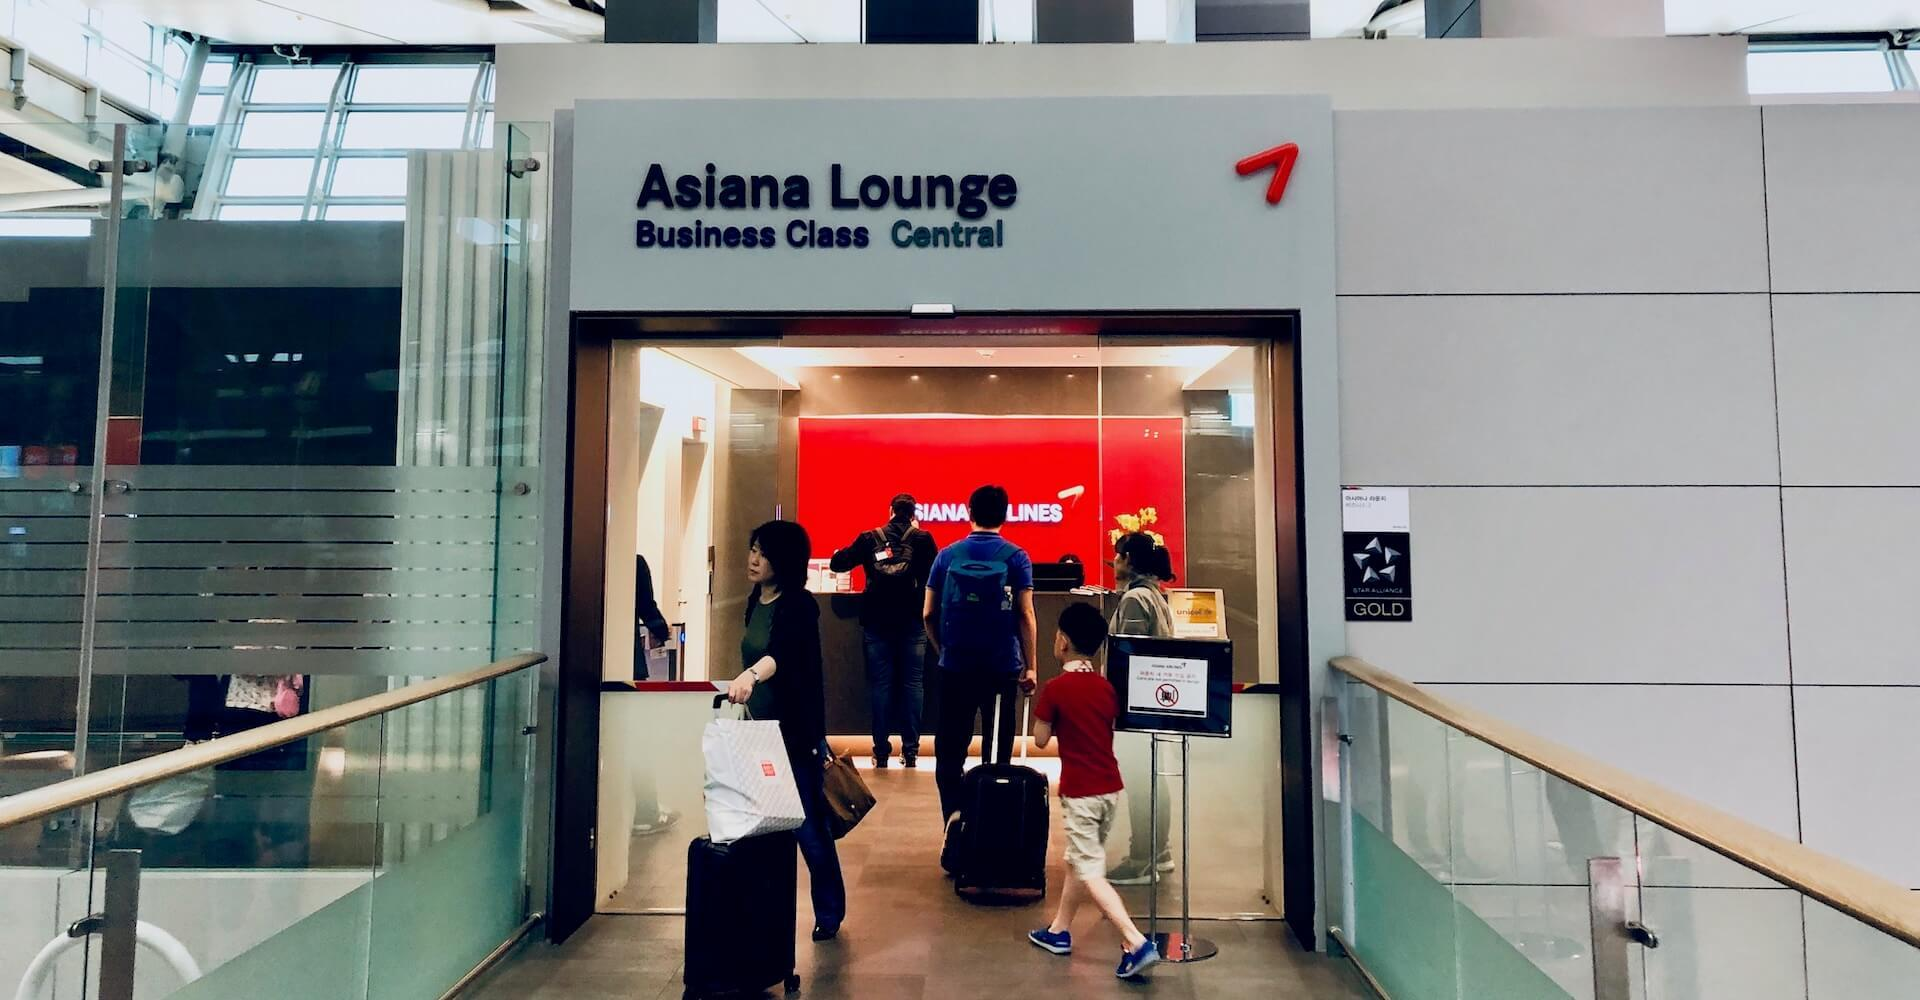 Asiana Lounge Business Central - Eingang